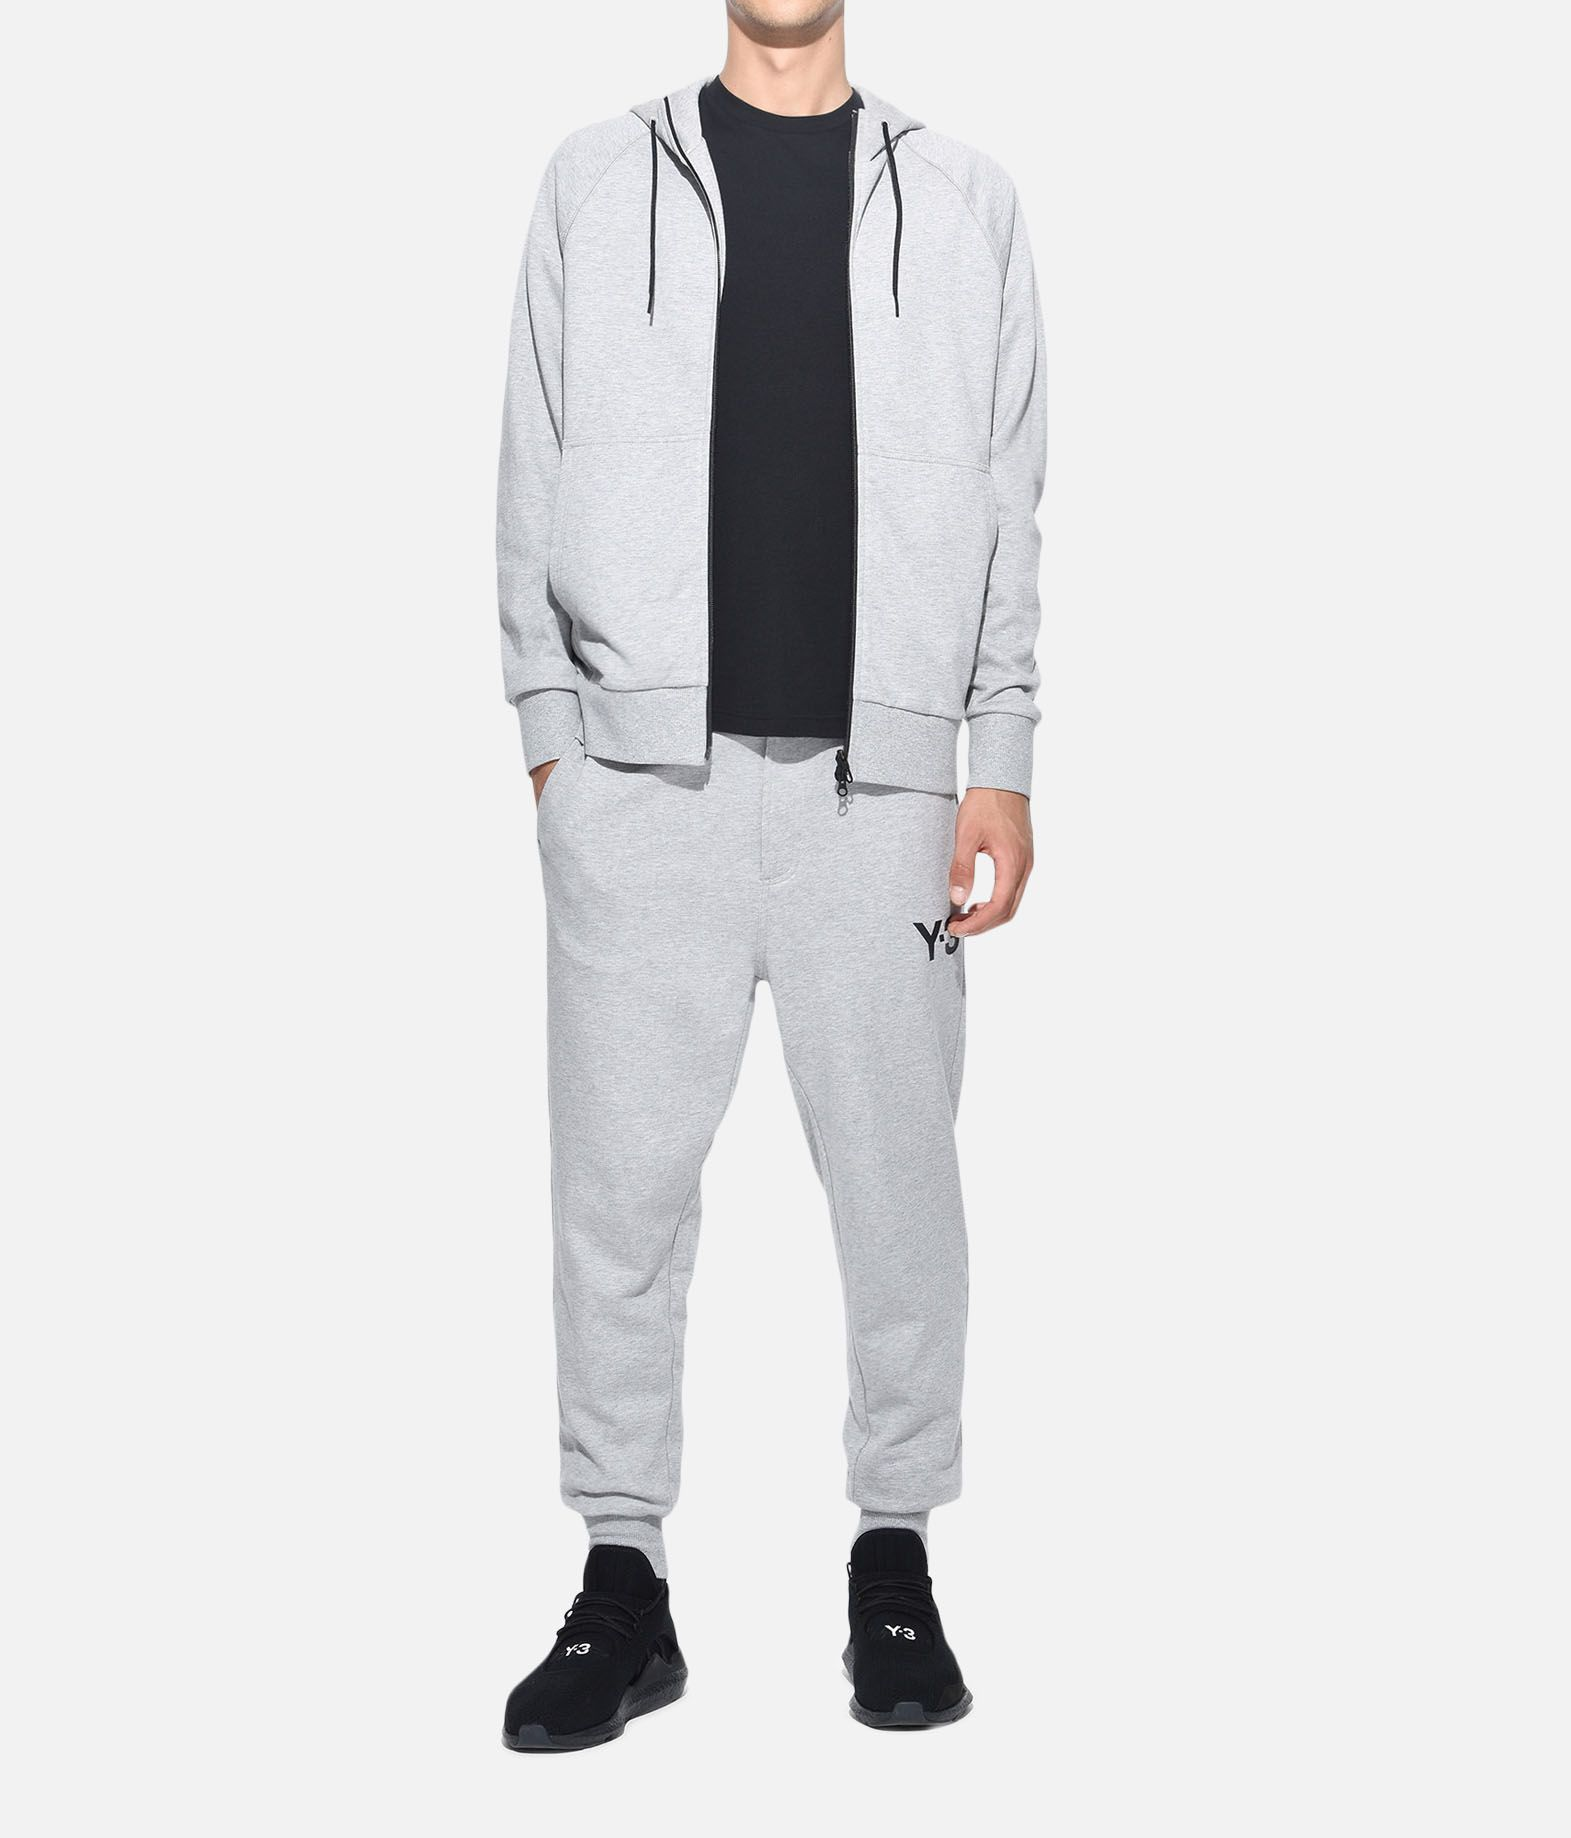 Y-3 Y-3 Classic Pants Sweatpants Man a